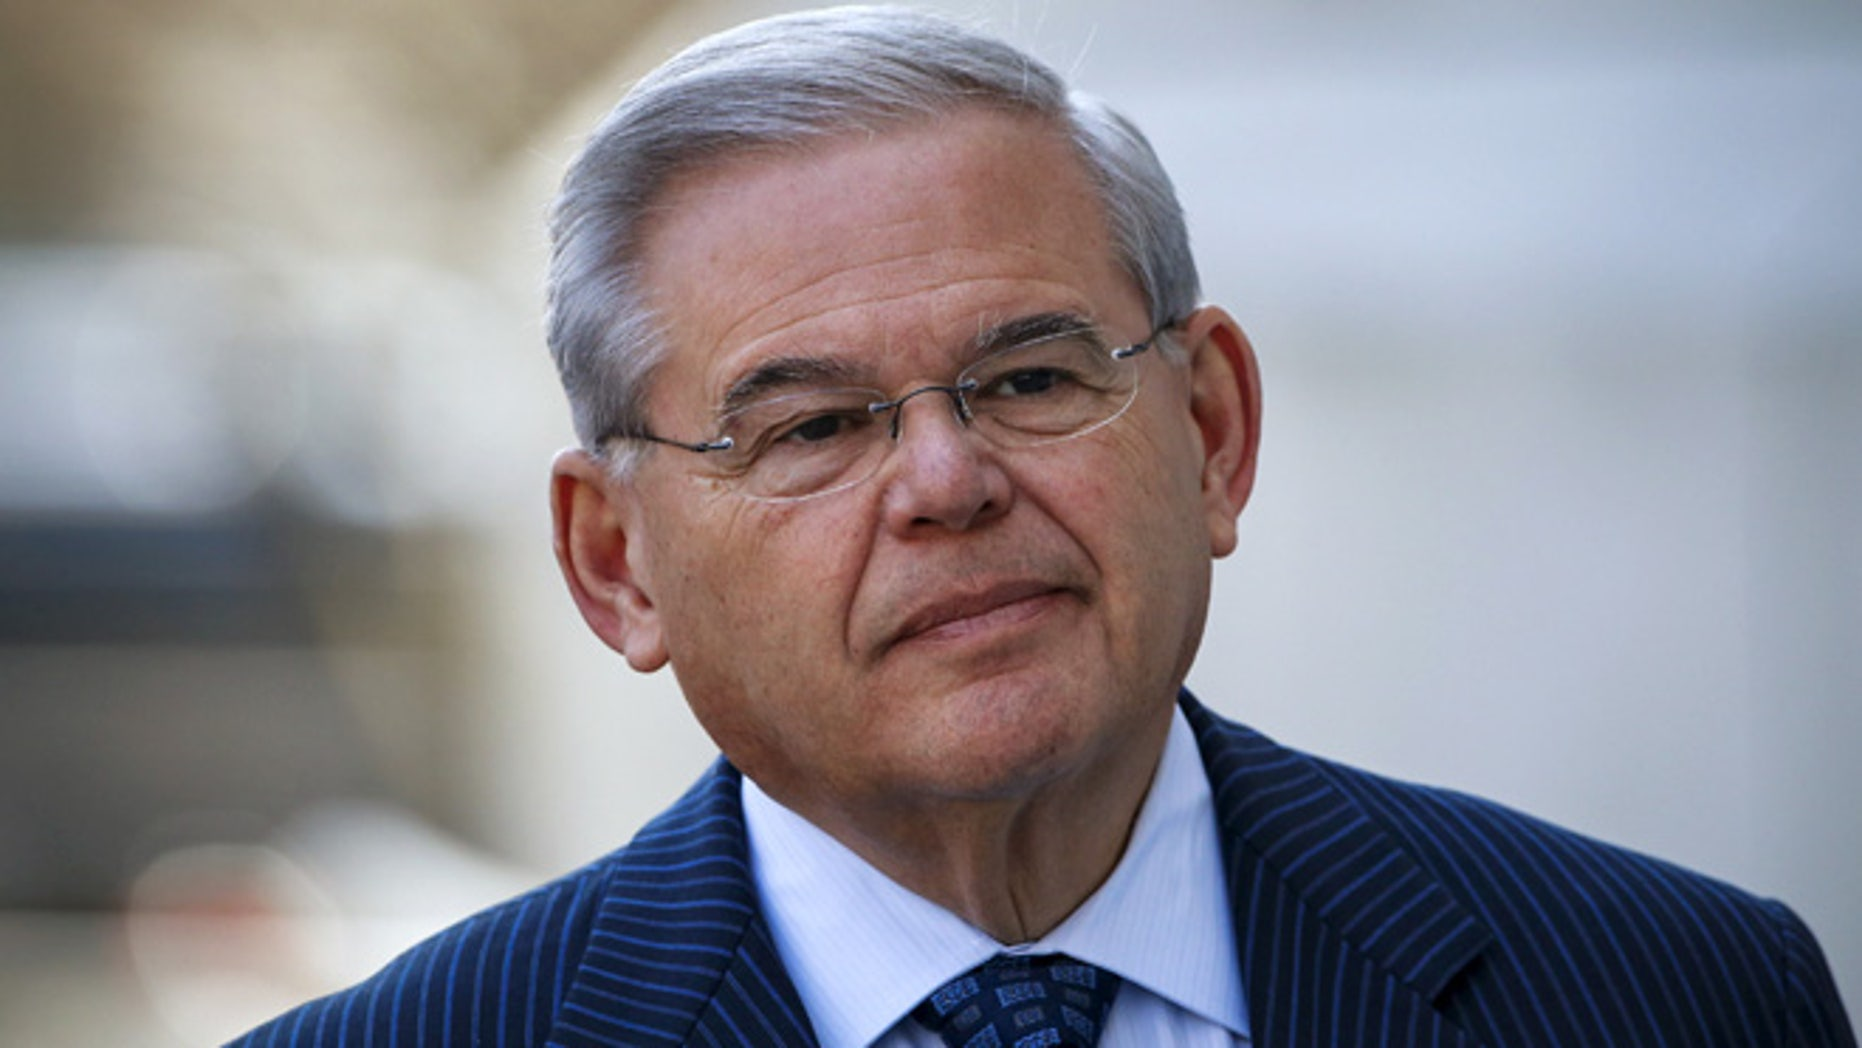 U.S. Senator Bob Menendez (D-NJ) arrives to the Federal court in Newark, New Jersey April 2, 2015.